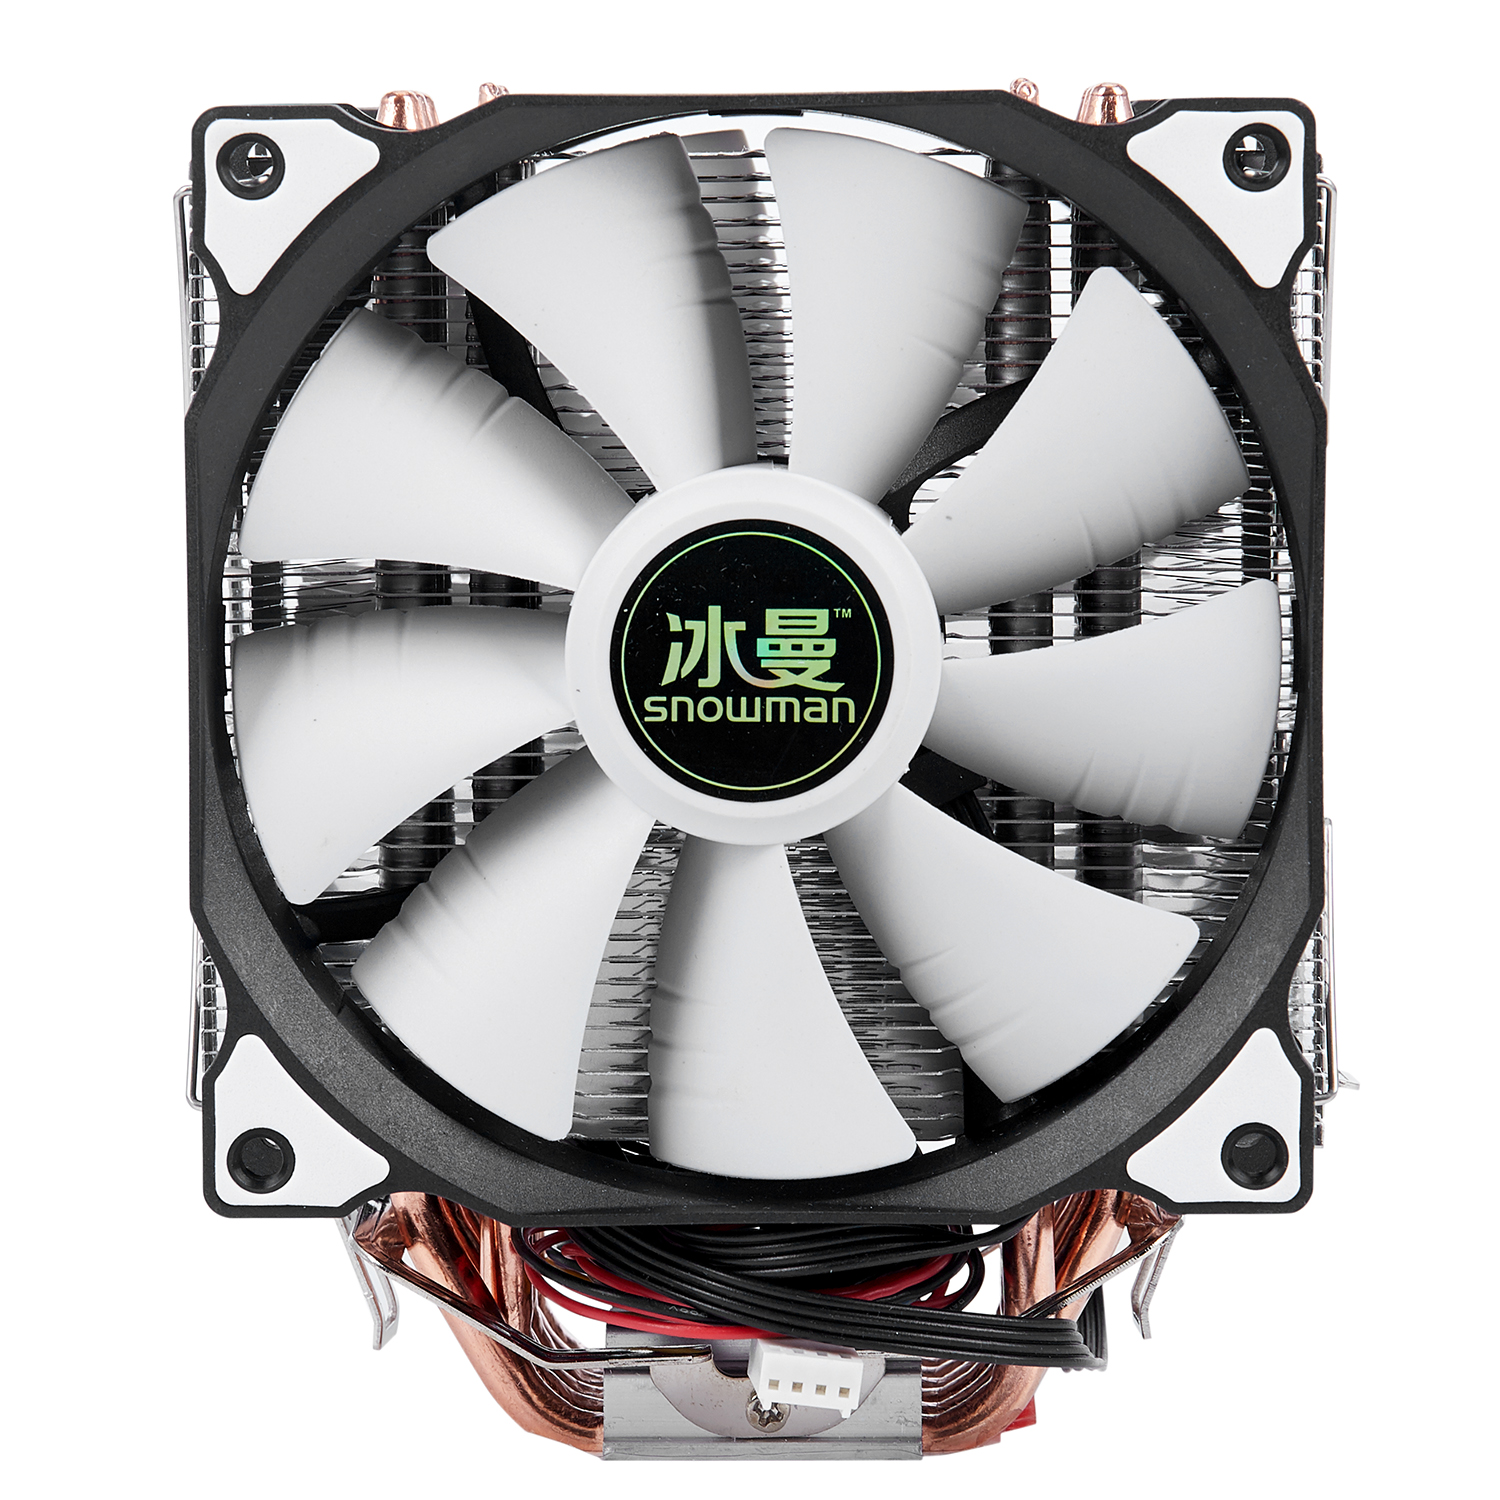 SNOWMAN 4PIN <font><b>CPU</b></font> <font><b>cooler</b></font> 6 heatpipe Double fans cooling 12cm fan LGA775 1151 <font><b>115x</b></font> 1366 support Intel AMD image